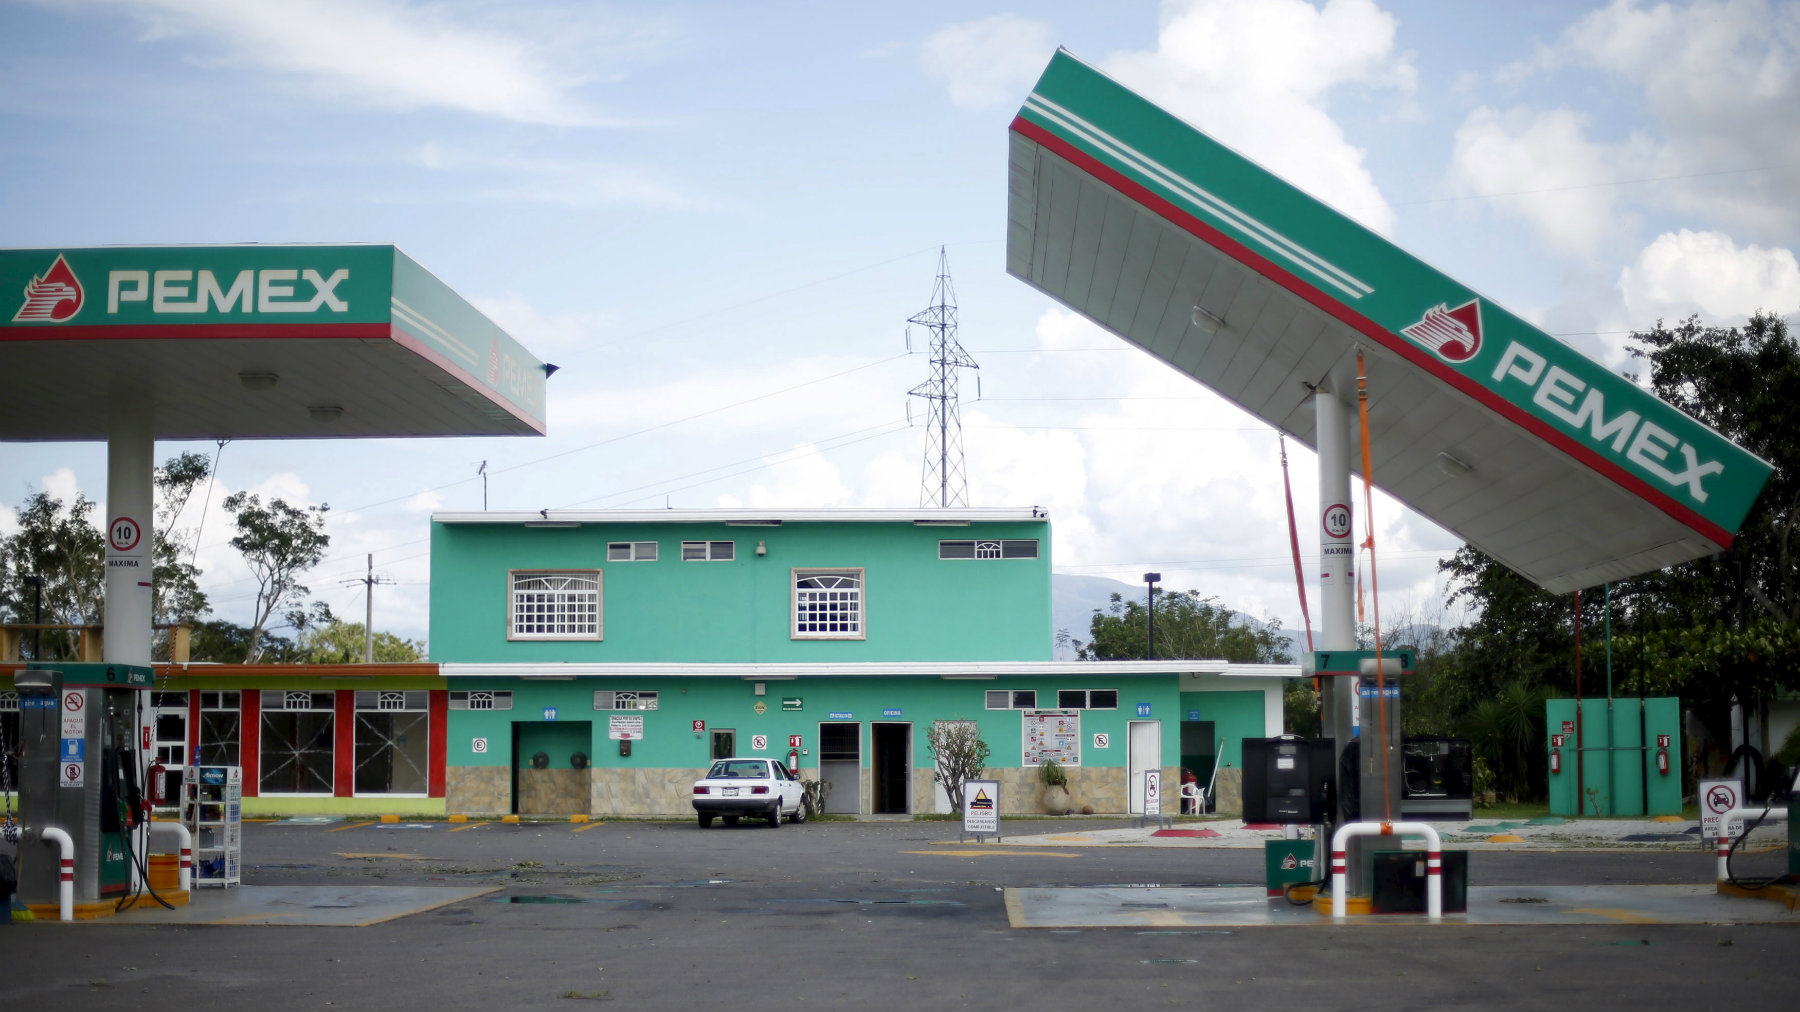 The damaged roof of a Pemex gas station is seen in Casimiro, Mexico October 24, 2015. Hurricane Patricia caused less damage than feared on Mexico's Pacific coast on Saturday, but little was known about an isolated part of the shoreline dotted with luxury villas and fishing villages, where the storm and its 165 mph (266 kph) winds landed.Thousands of residents and tourists had fled the advance of the storm, one of the strongest in recorded history, seeking refuge in hastily arranged shelters. There were no early reports of deaths and it appeared major damage was averted as Patricia missed tourist centers like Puerto Vallarta and the major cargo port of Manzanillo. REUTERS/Edgard Garrido